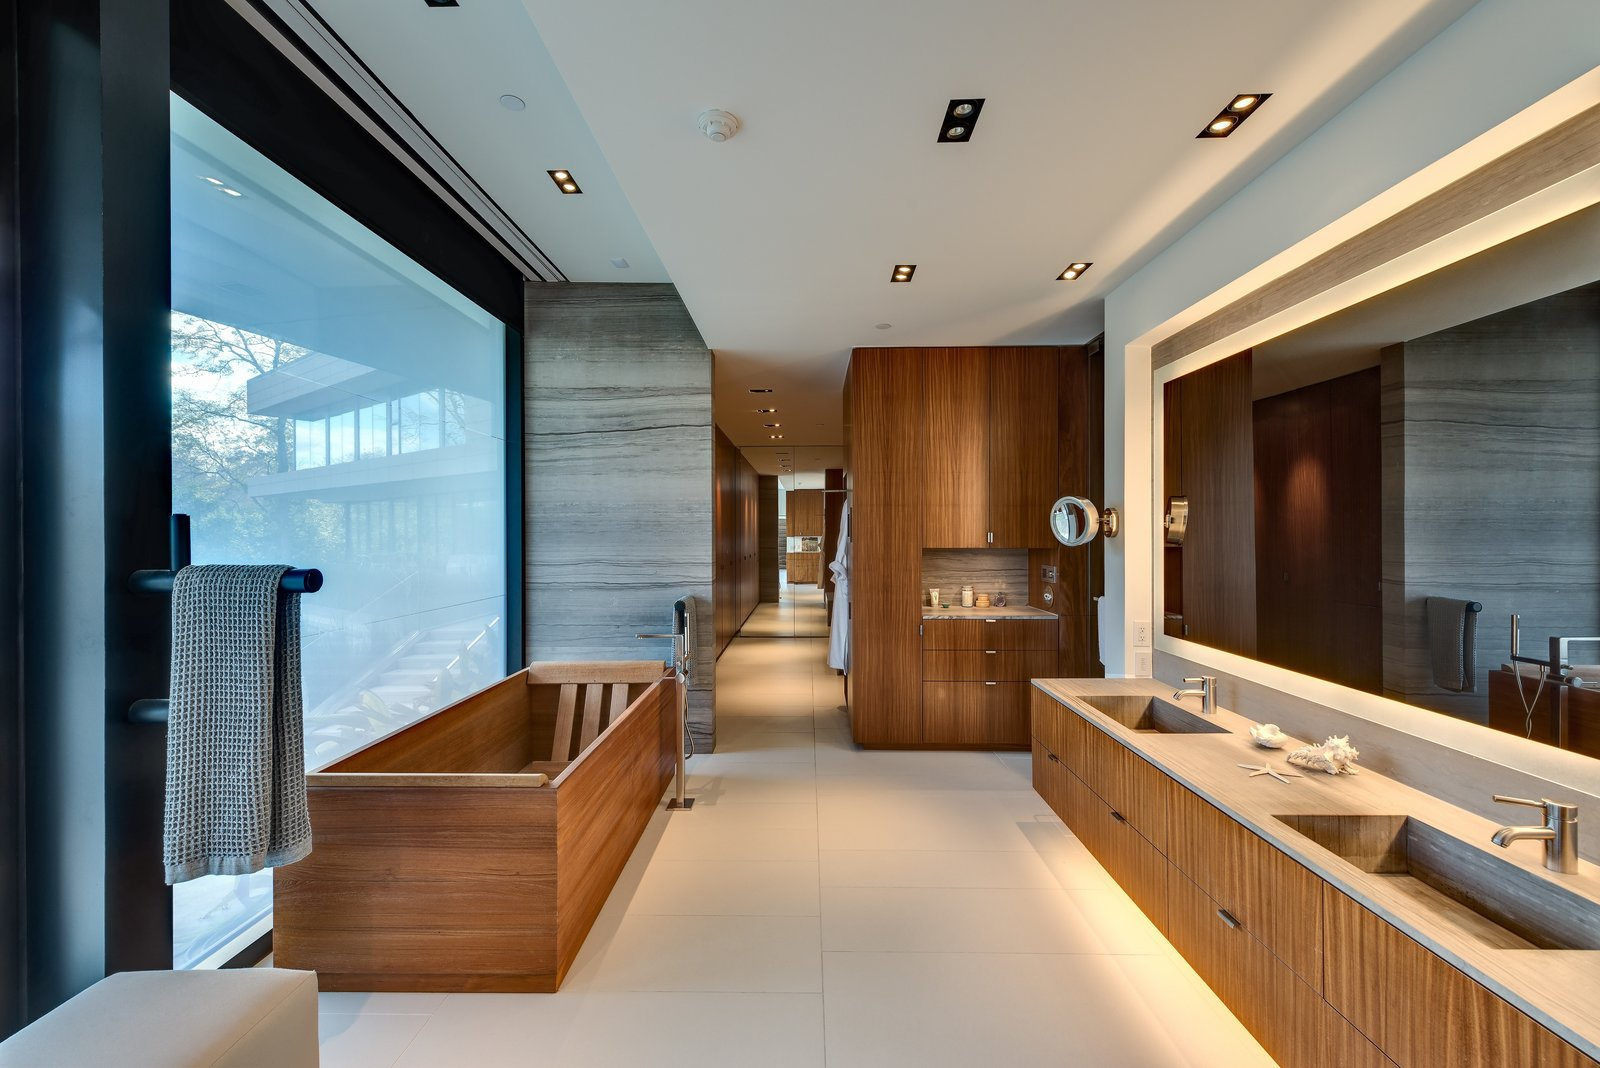 One Of These Ultra Modern Bathrooms Could Be The Escape Of Your Dreams